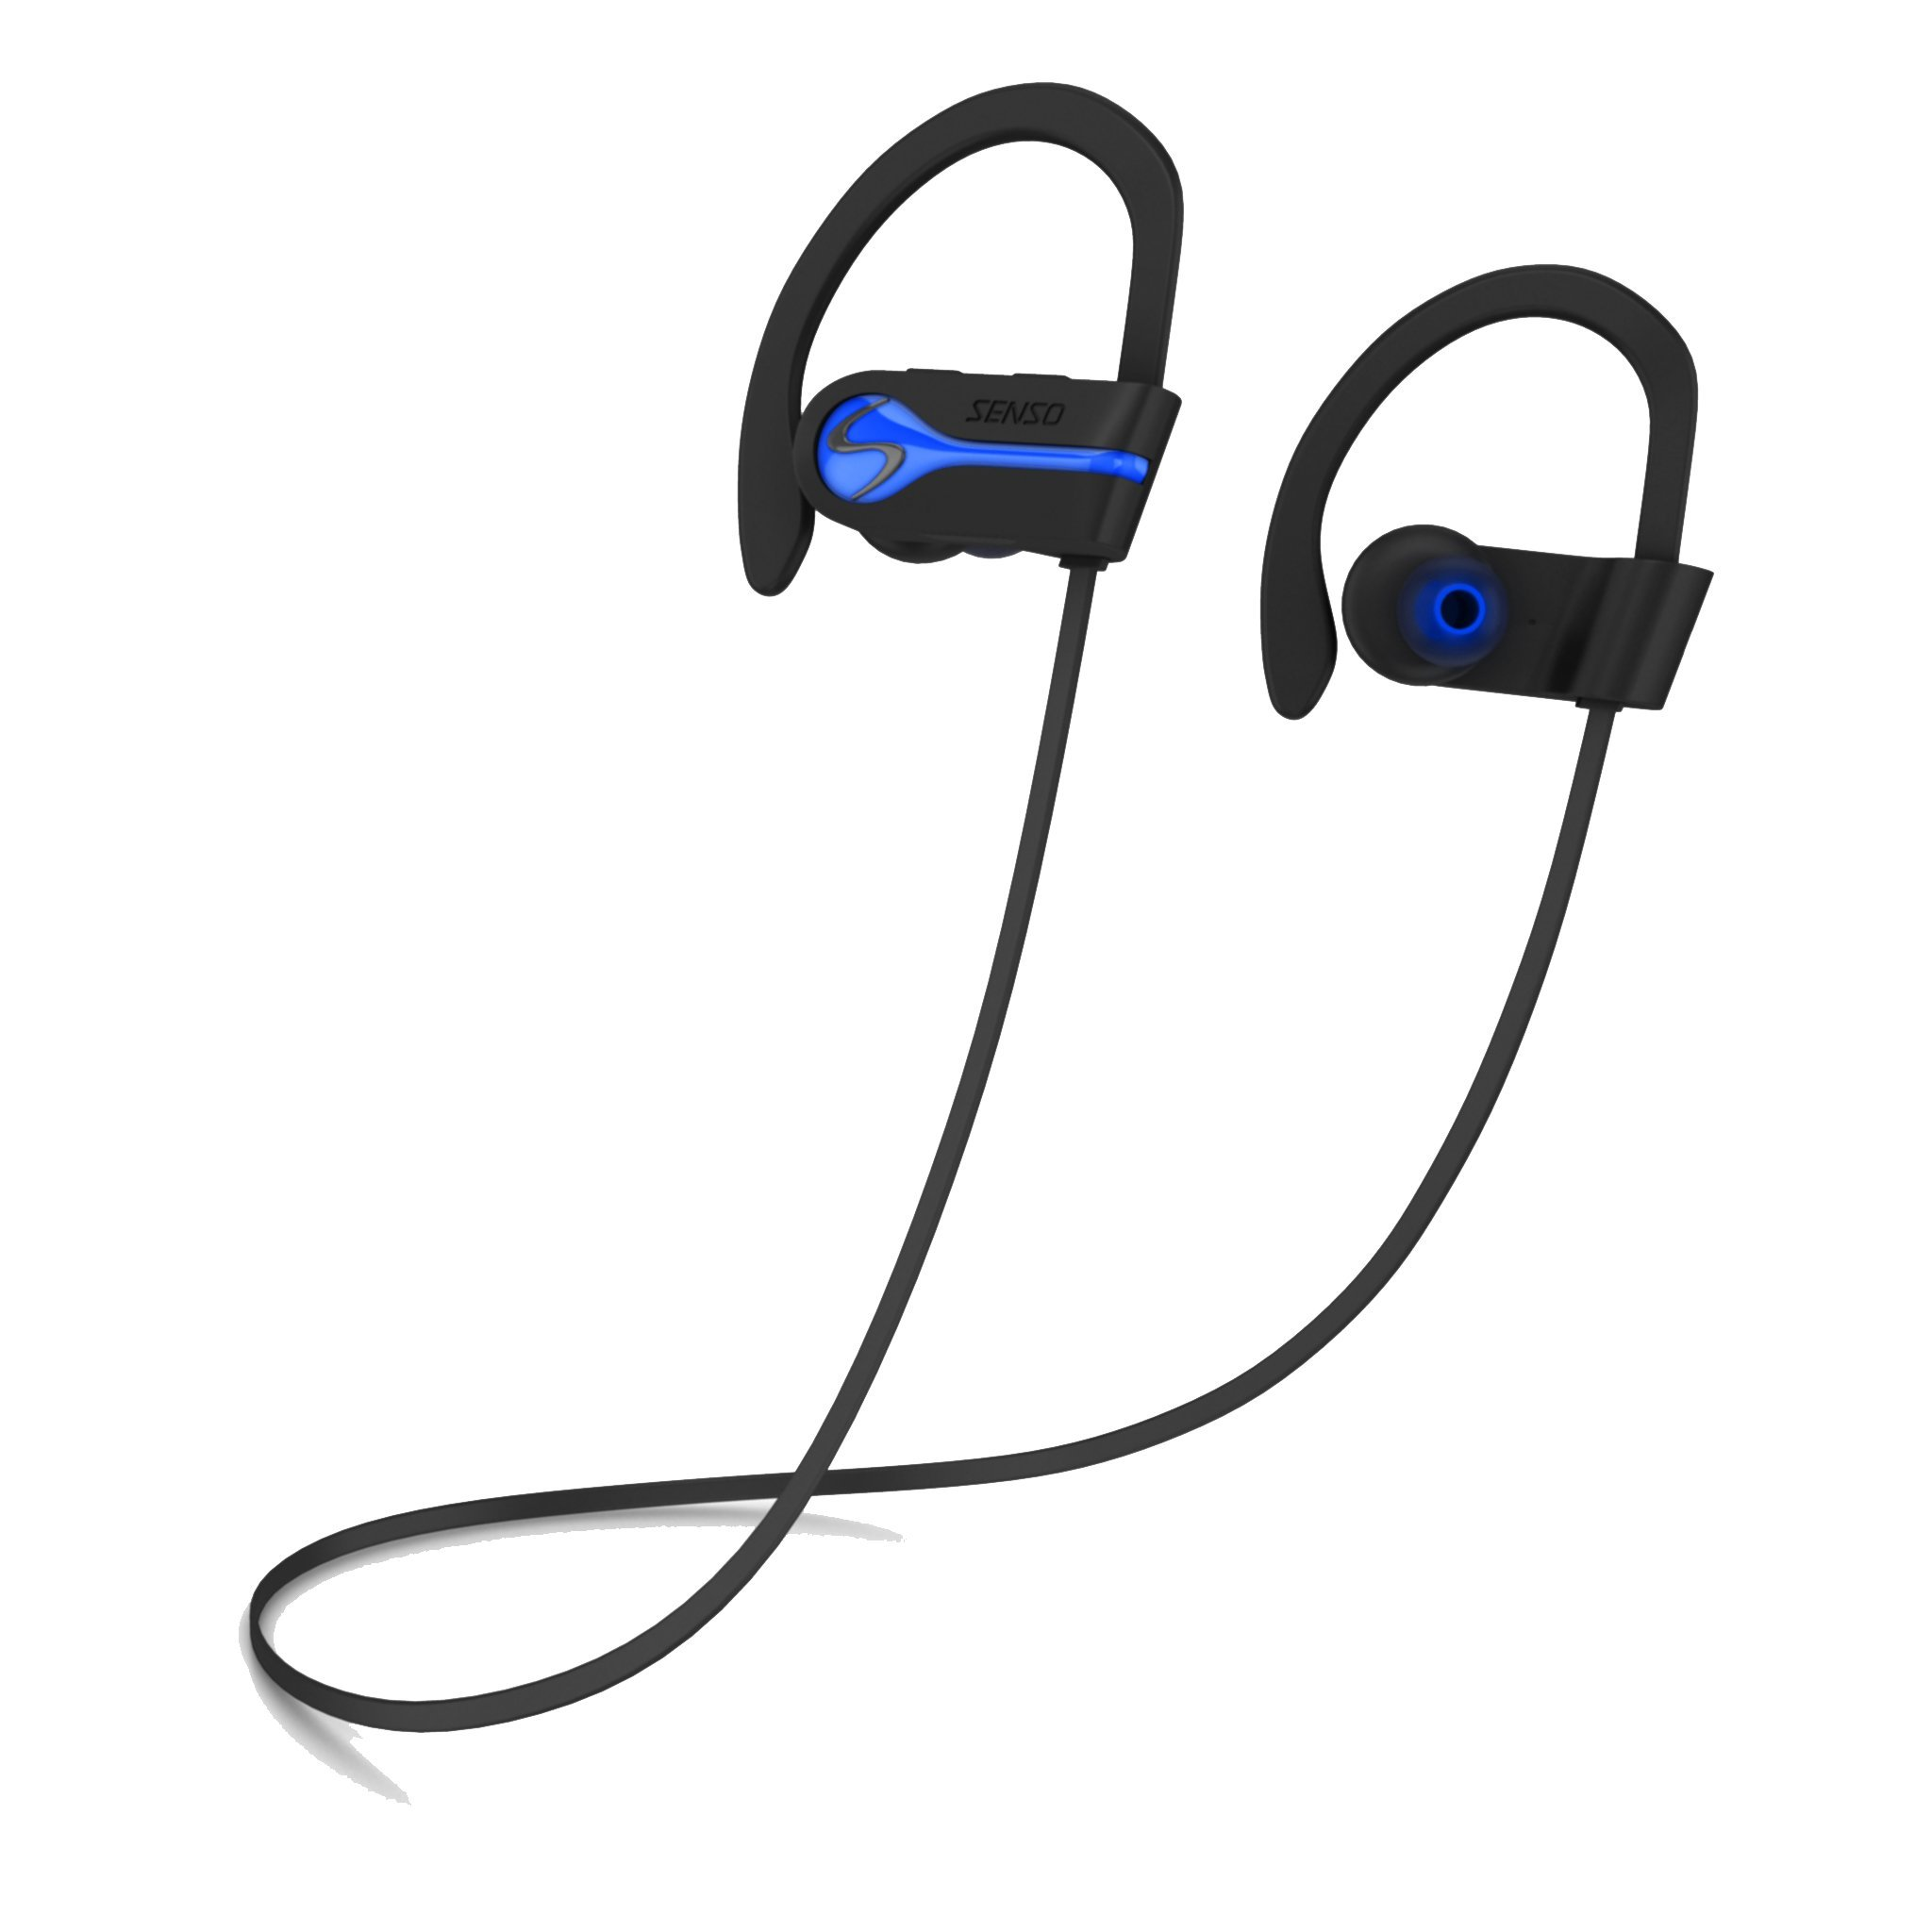 SENSO Bluetooth Wireless Headphones, Best Sports Earphones w/Mic IPX7 Waterproof HD Stereo Sweatproof Earbuds for Gym Running Workout 8 Hour Battery Noise Cancelling Headsets Cordless Heapdhone - Blue by Senso